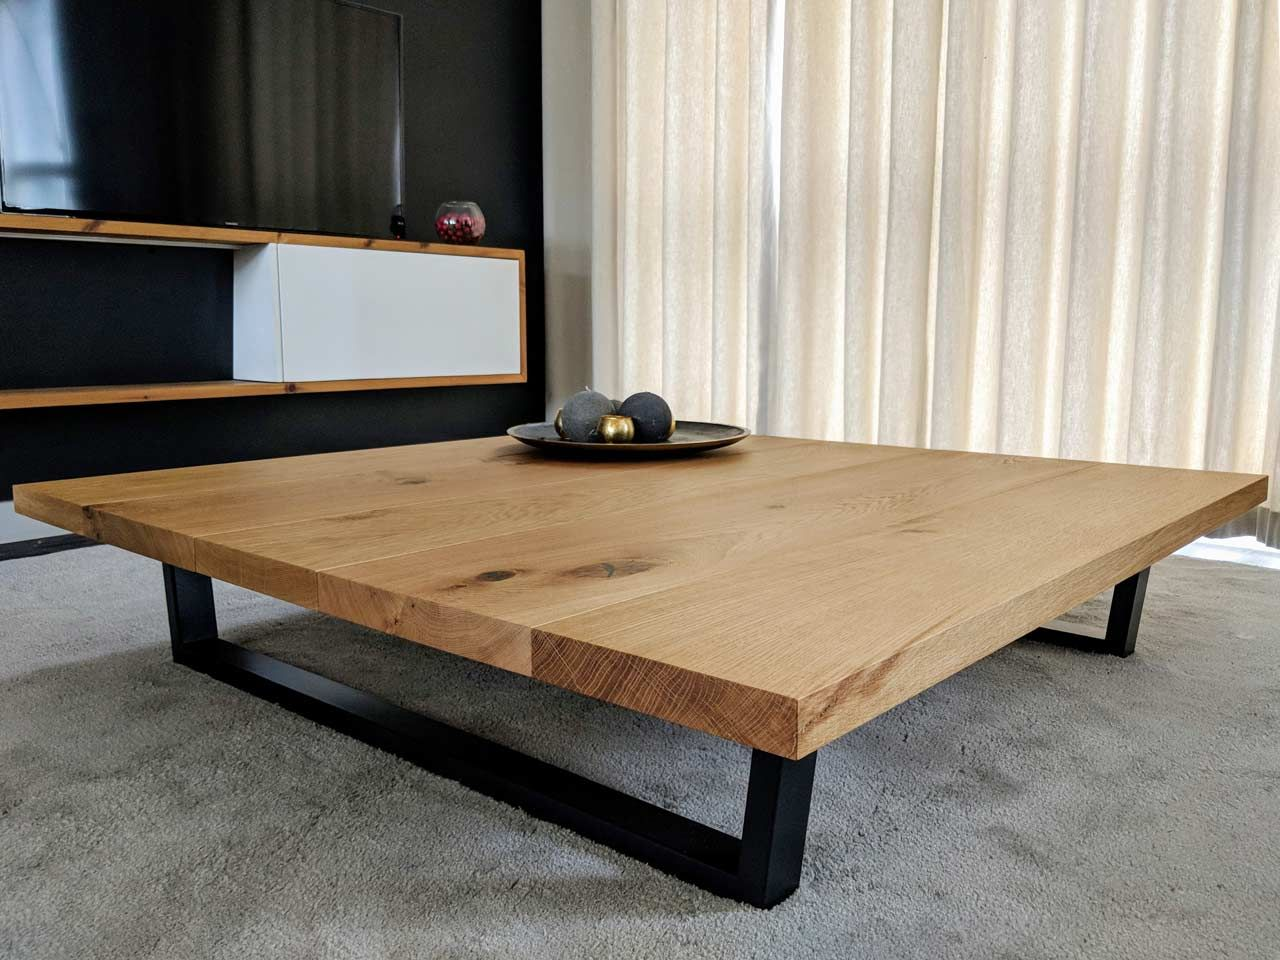 Abacus Tables Project 695 Modern Wood Coffee Table Wooden Coffee Table Designs Large Square Coffee Table [ 960 x 1280 Pixel ]